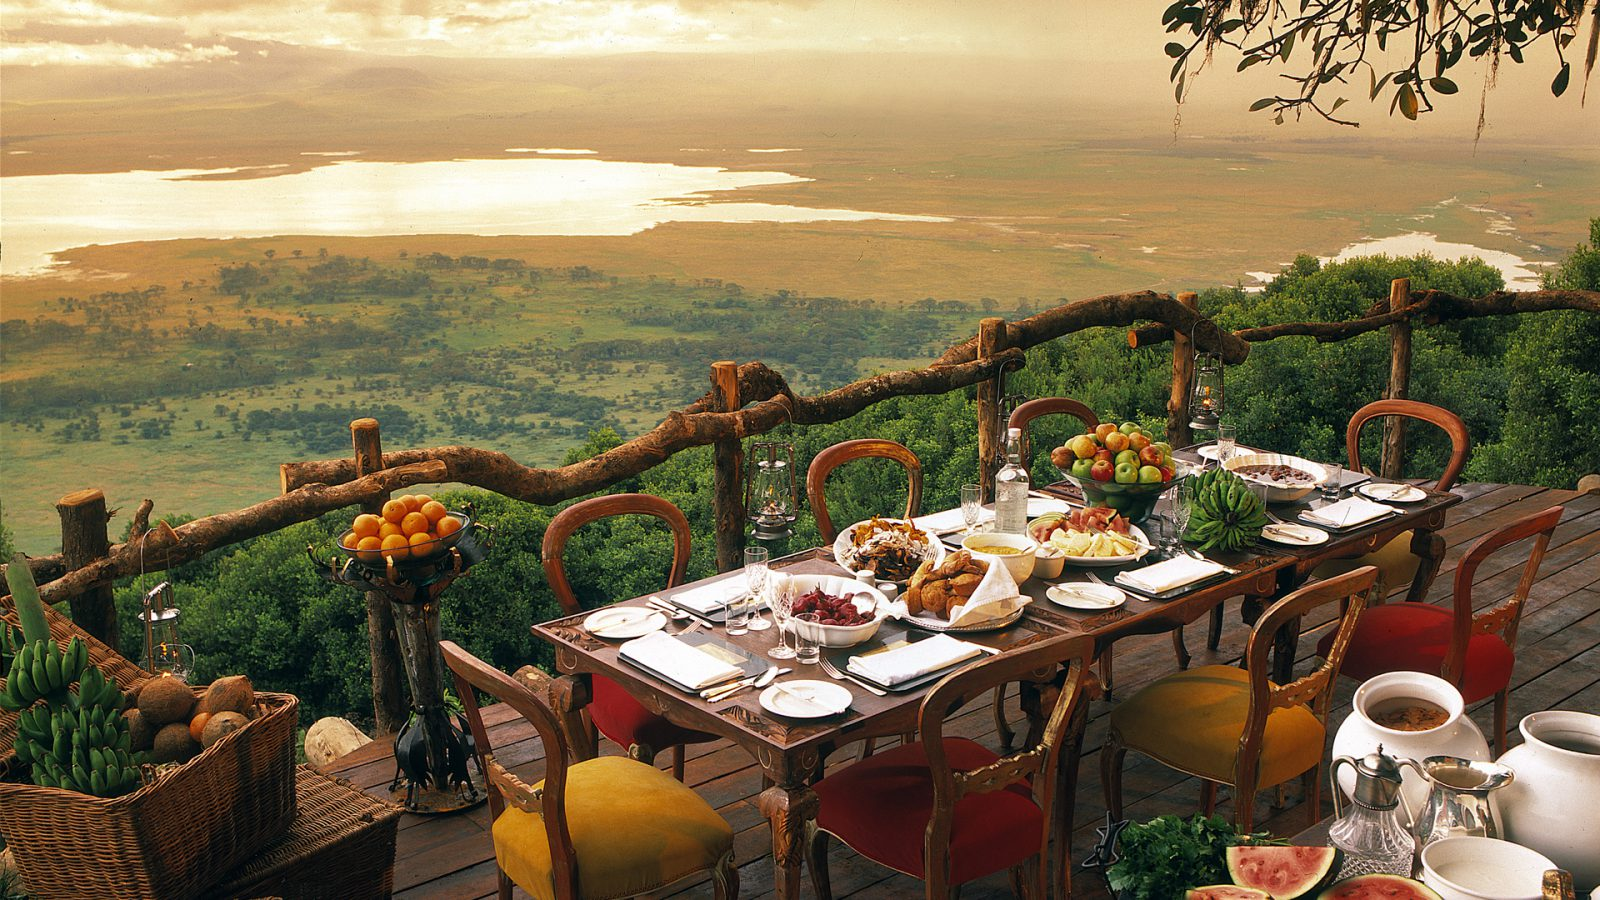 luxury lifestyle Luxury Lifestyle:  The Most Luxurious Hotel Rooms in Africa 6 NGORONGORO CRATER LODGE     TANZANIA